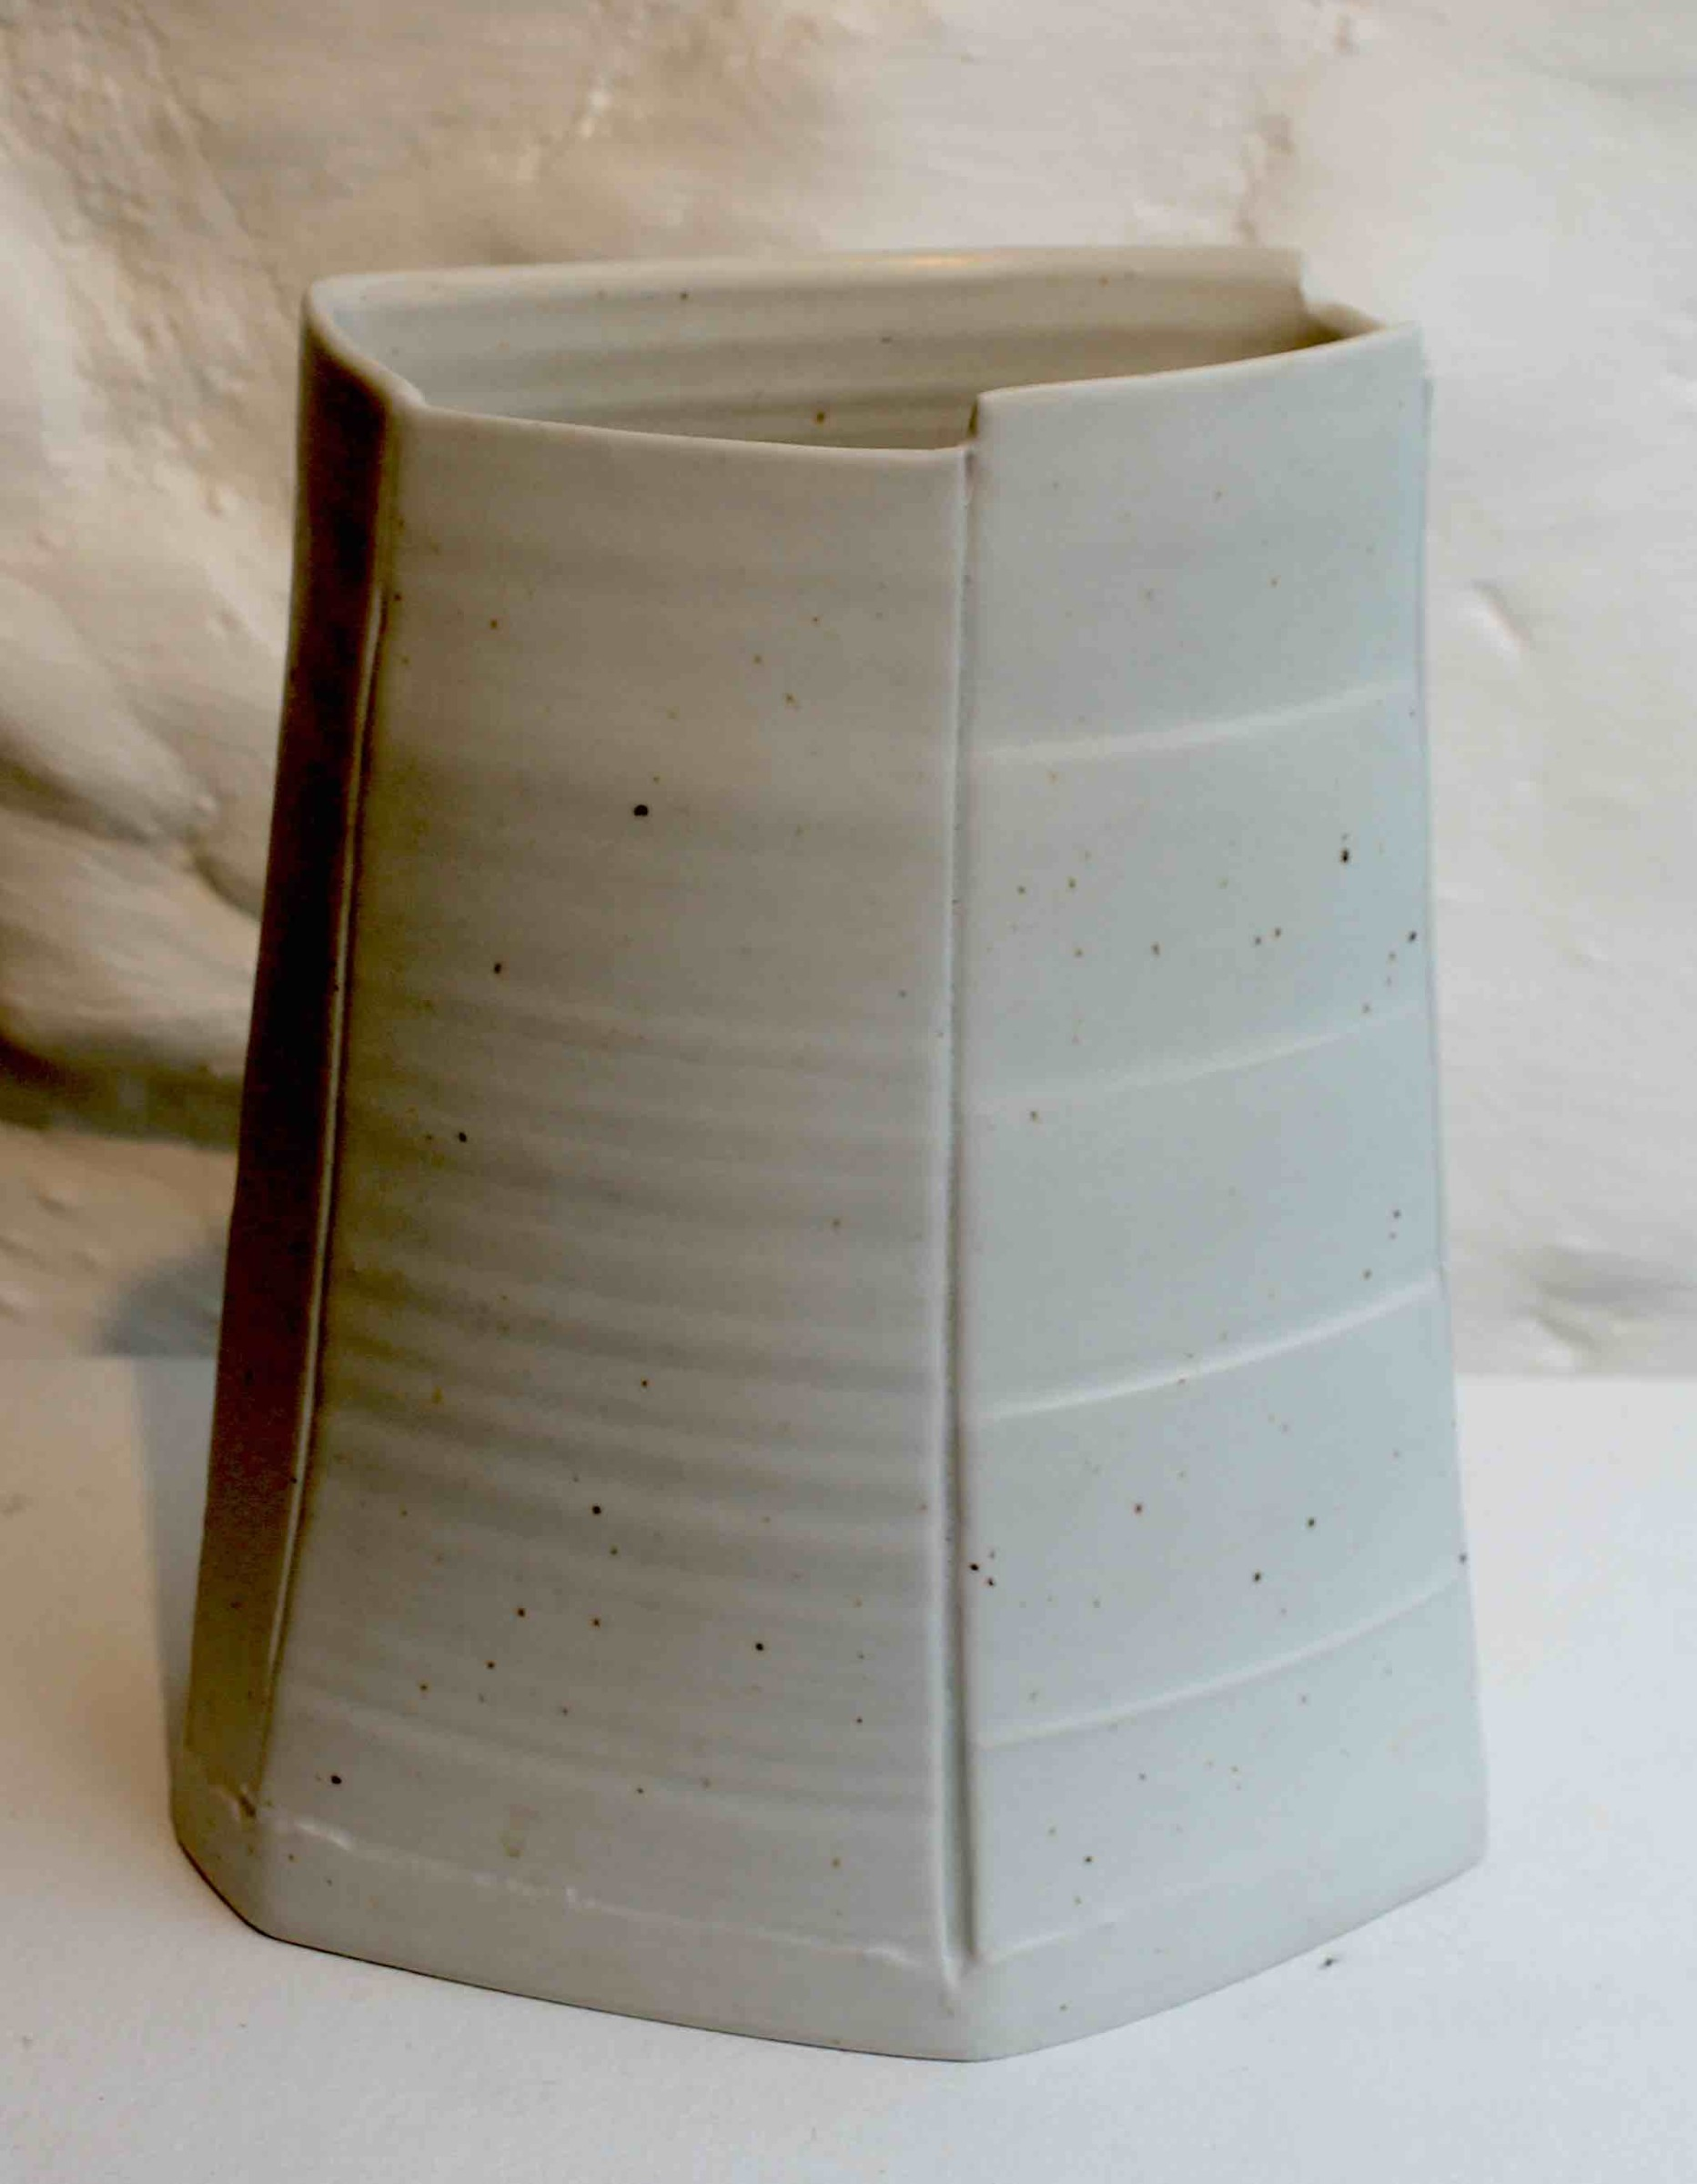 "<span class=""link fancybox-details-link""><a href=""/artists/99-carina-ciscato/works/5761-carina-ciscato-tall-coloured-vase-2018/"">View Detail Page</a></span><div class=""artist""><strong>Carina Ciscato</strong></div> <div class=""title""><em>Tall Coloured Vase</em>, 2018</div> <div class=""signed_and_dated"">porcelain</div> <div class=""medium"">porcelain</div> <div class=""dimensions"">18 x 13 cm<br /> 7 1/8 x 5 1/8 inches</div><div class=""price"">£750.00</div><div class=""copyright_line"">OwnArt: £ 75 x 10 Months, 0% APR</div>"